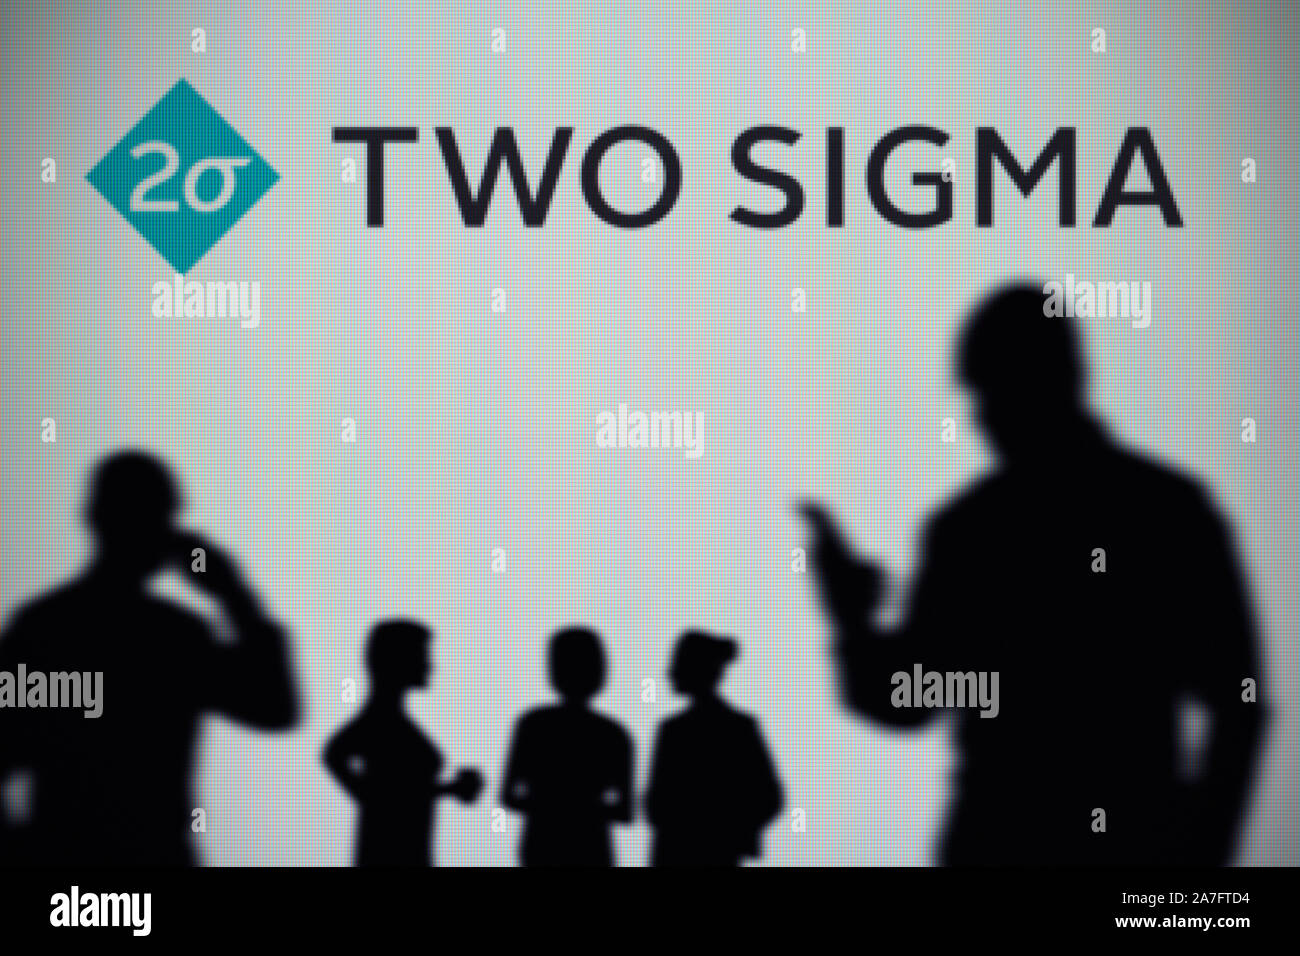 The Two Sigma logo is seen on an LED screen in the background while a silhouetted person uses a smartphone (Editorial use only) Stock Photo